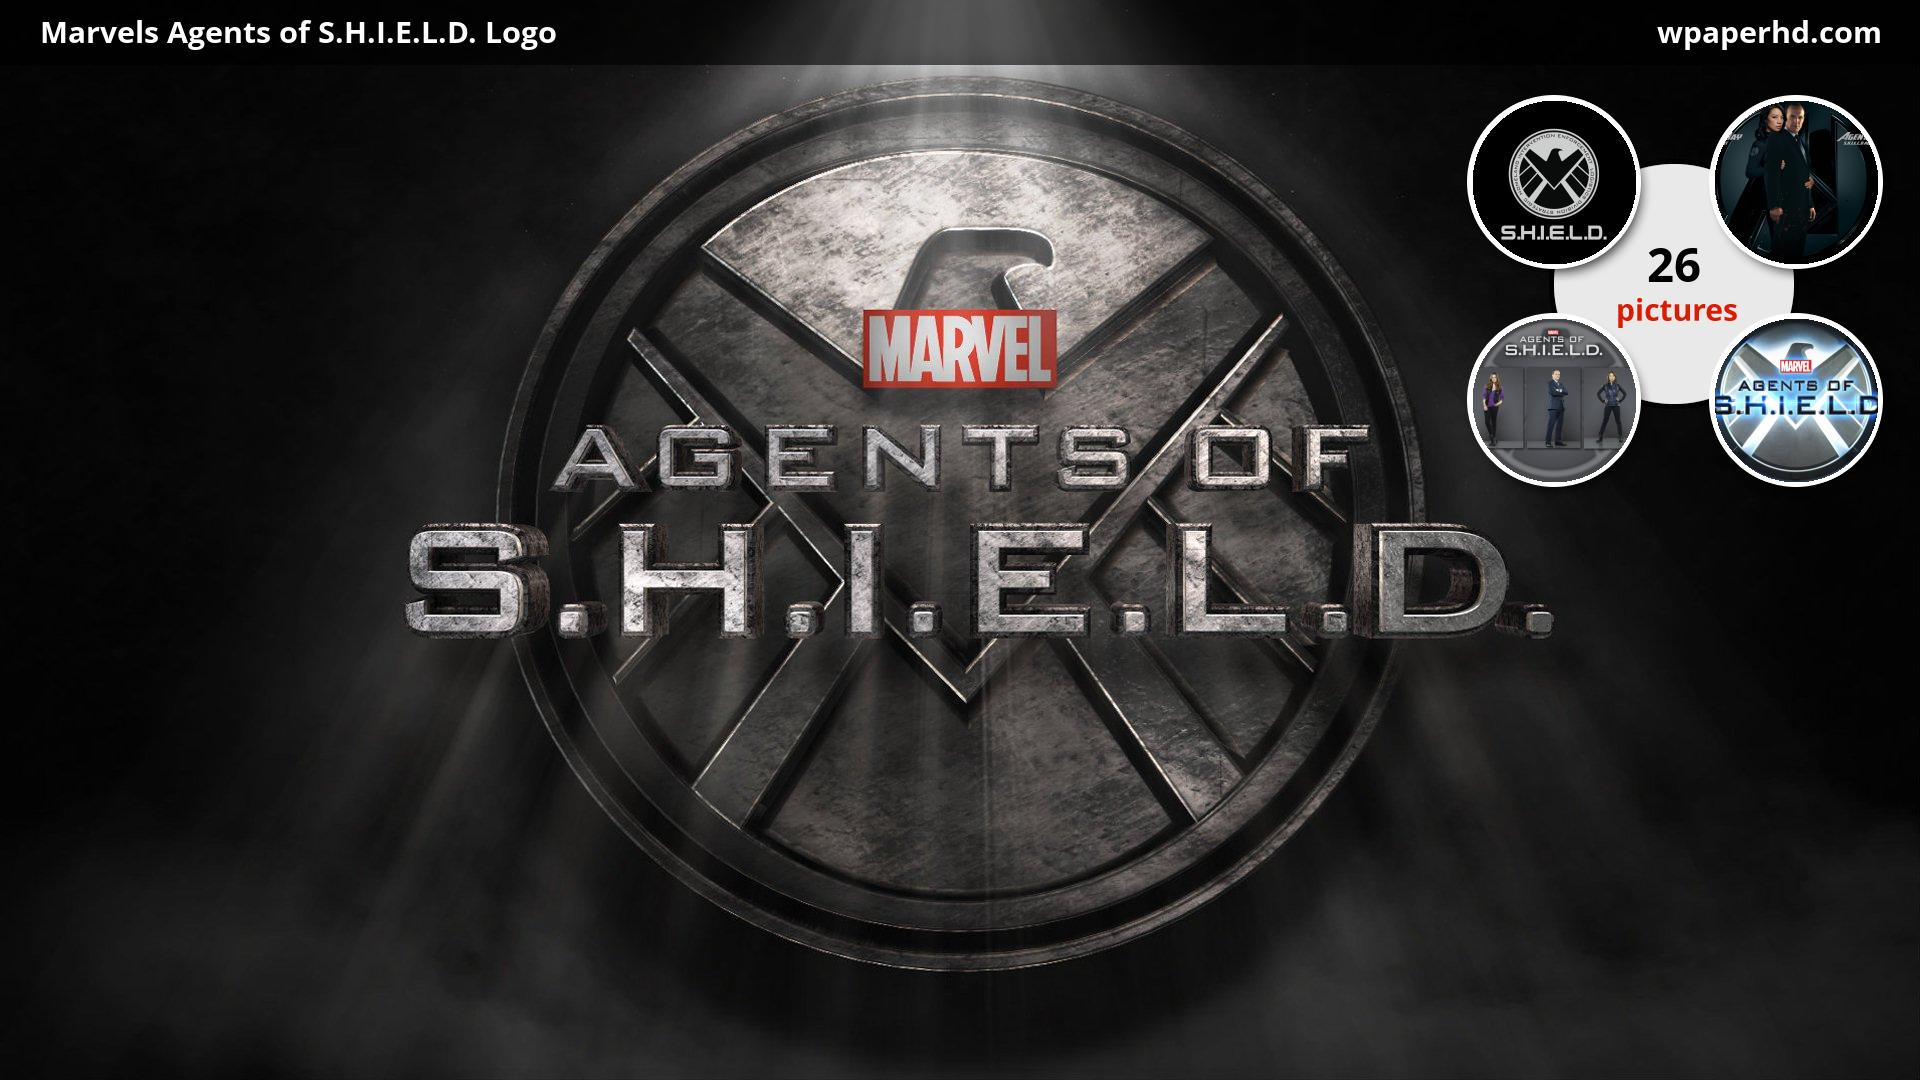 Shield Logo Wallpaper